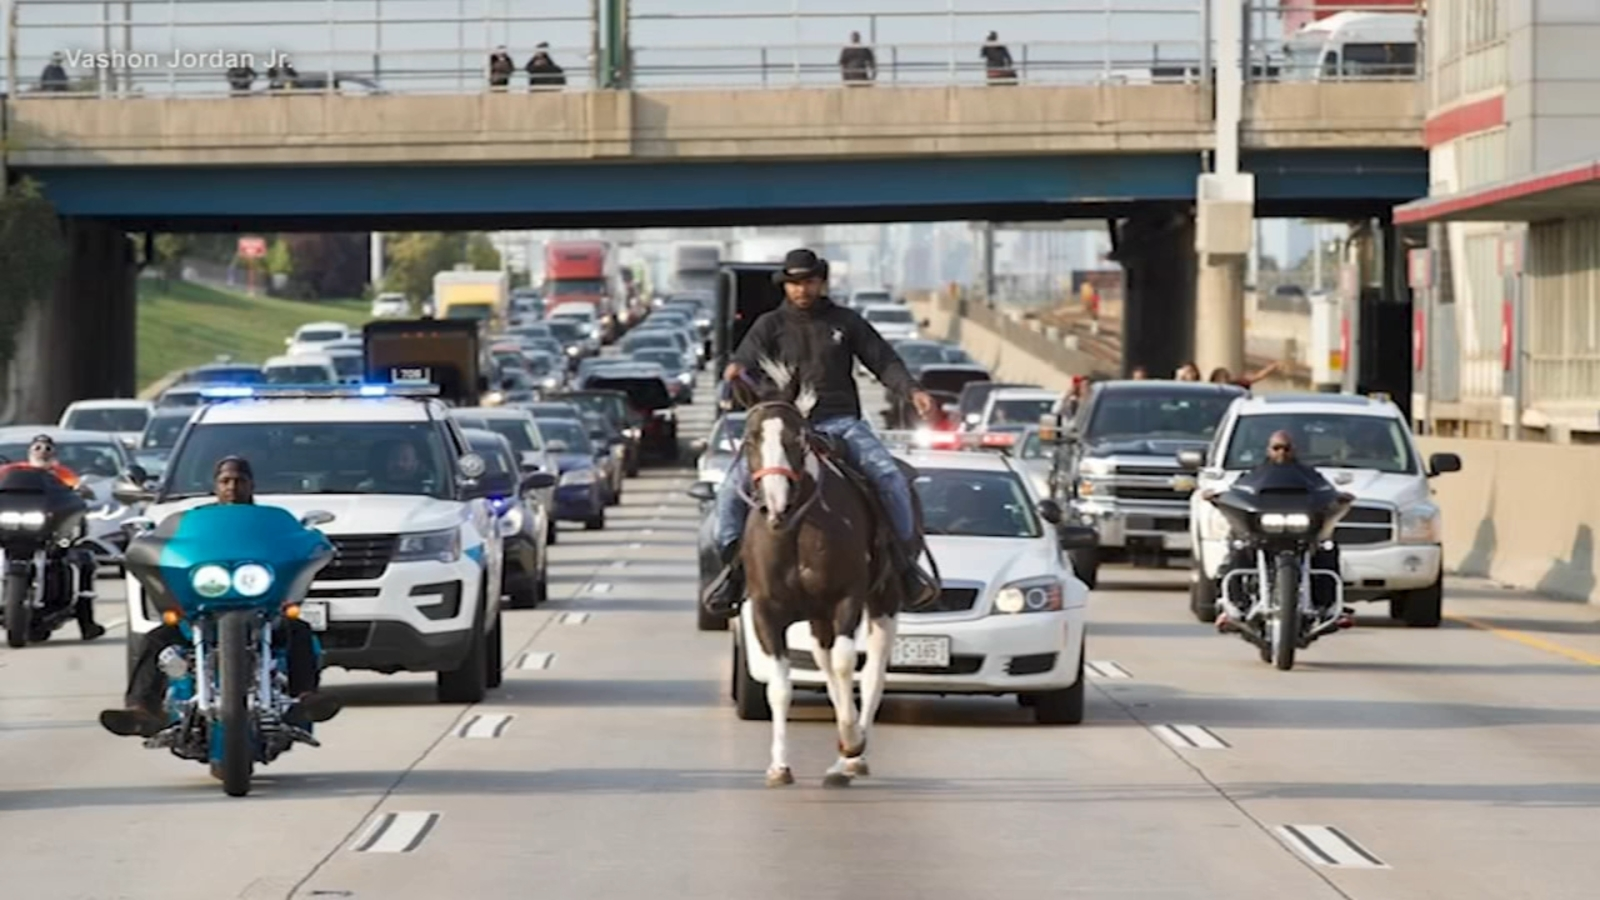 Chicago's Dreadhead Cowboy rides horse on Dan Ryan Expressway; charged reckless conduct, trespassing, ISP says